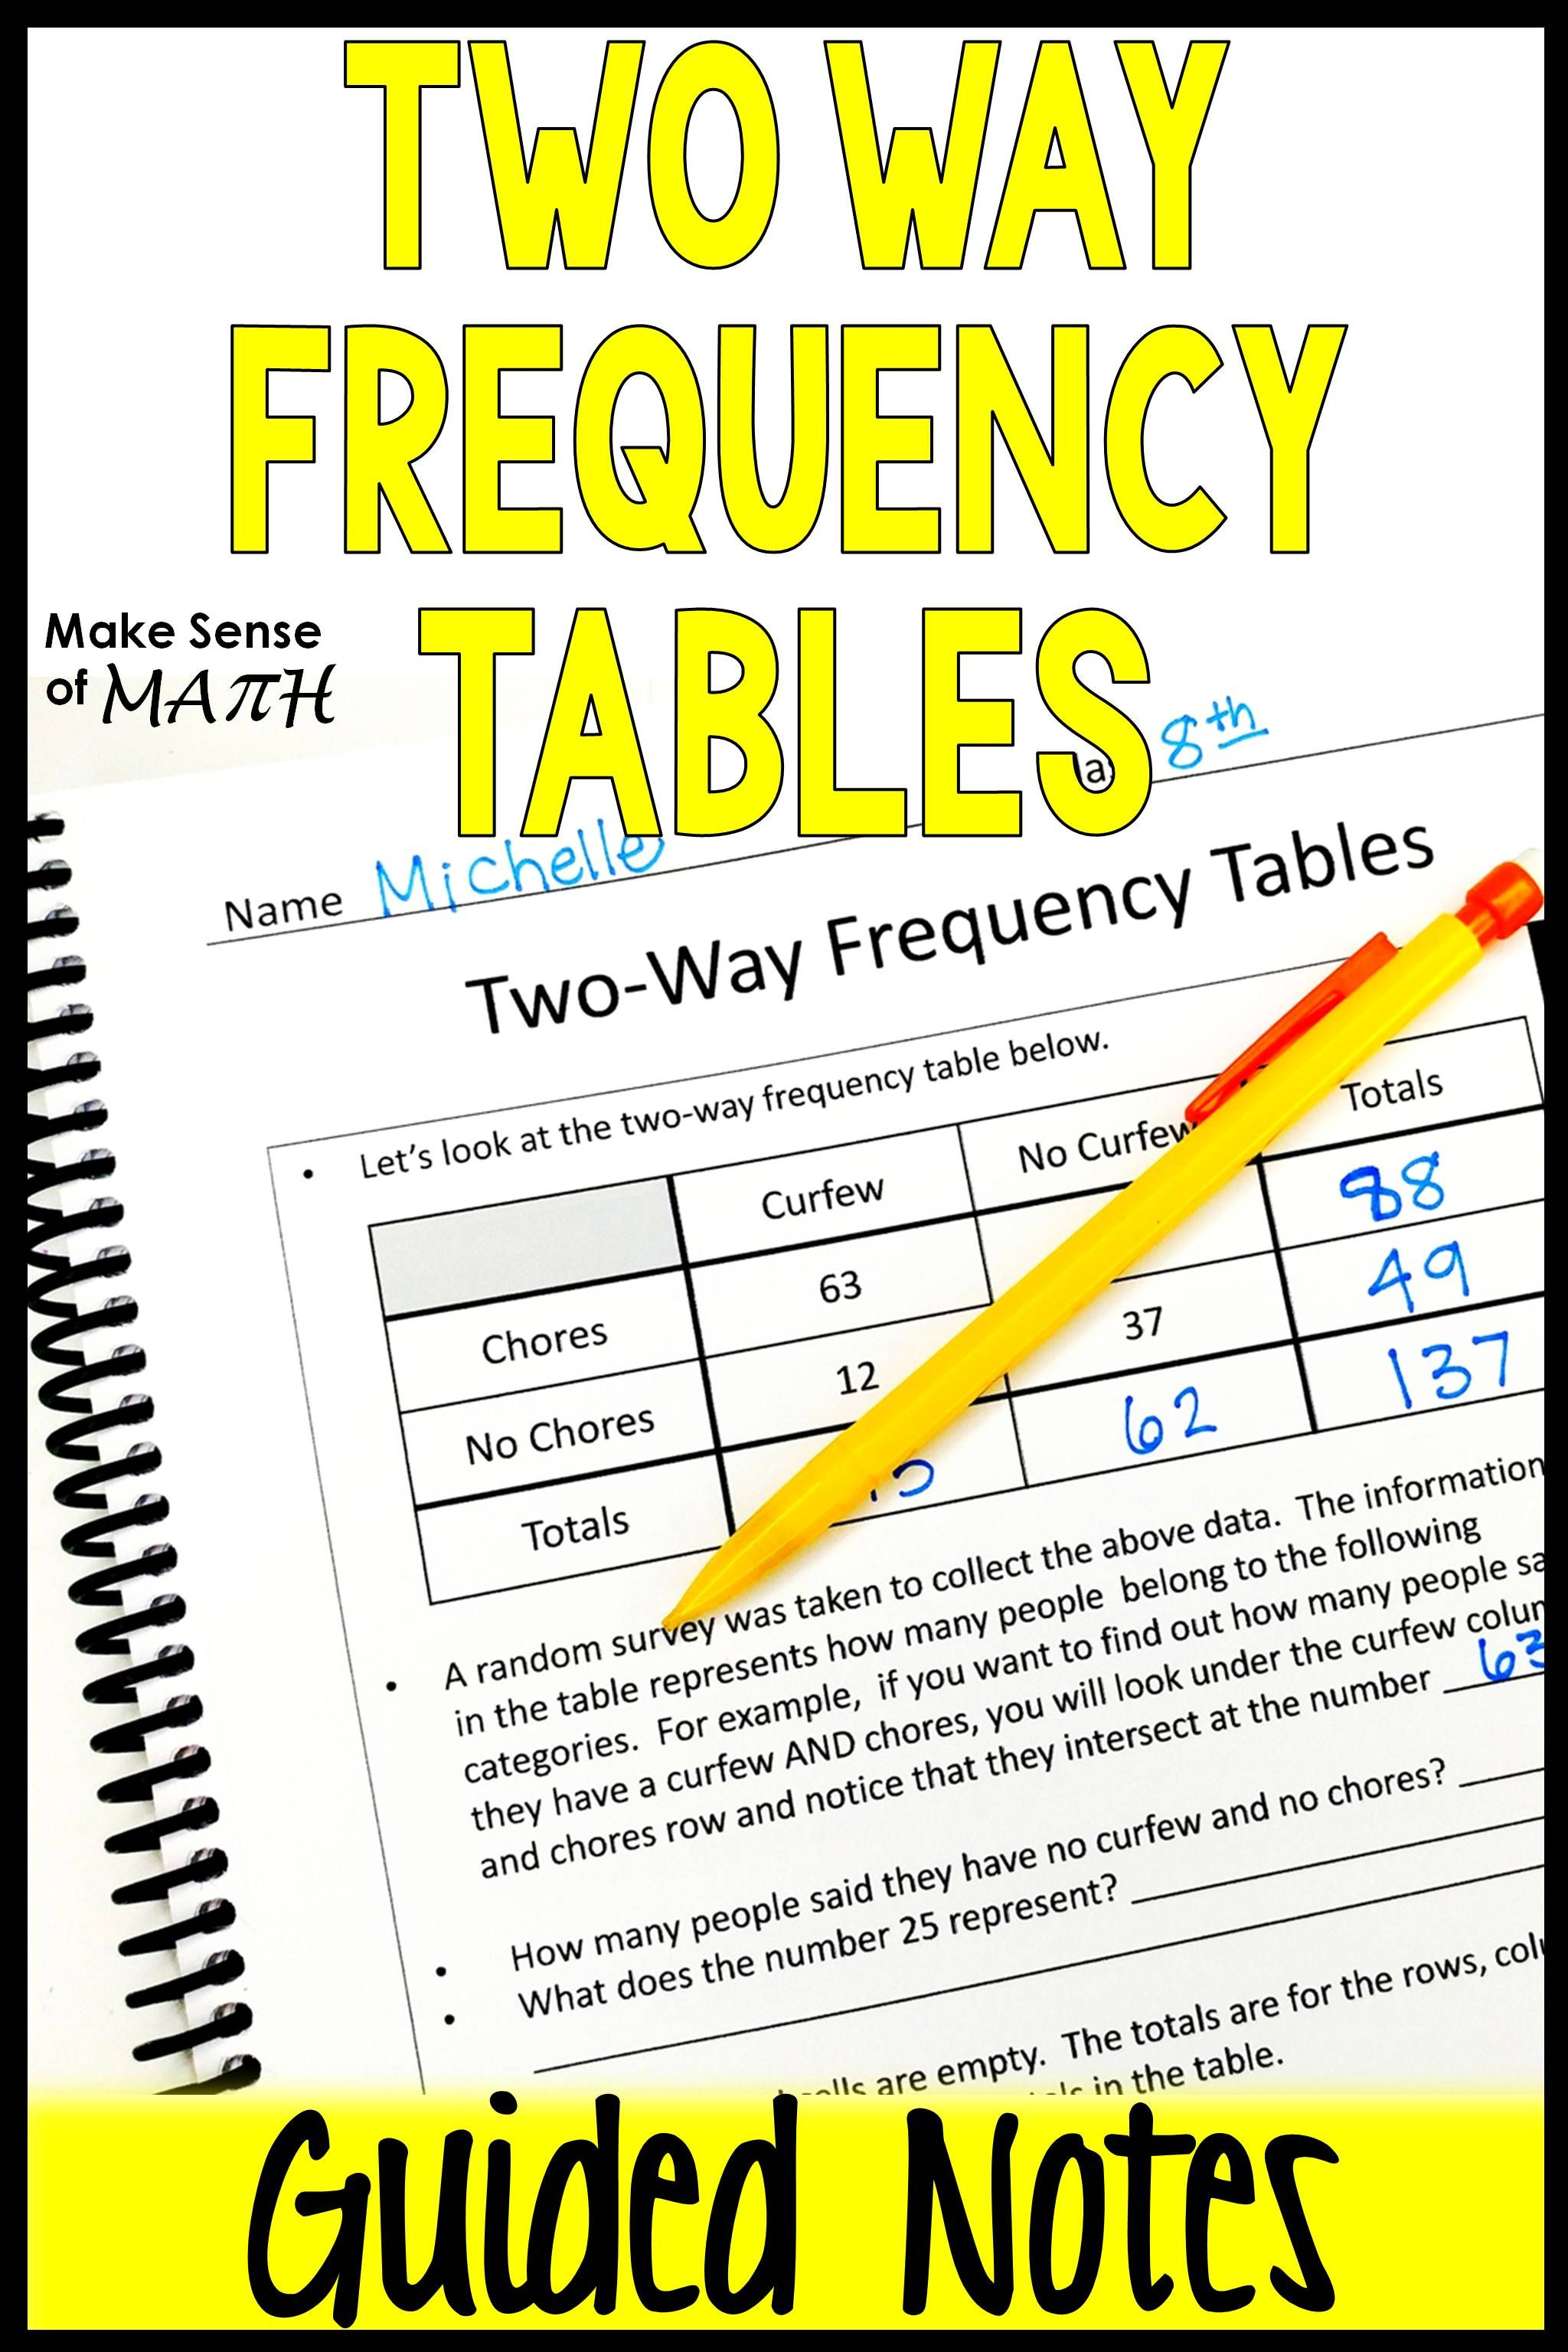 Two Way Frequency Tables Notes